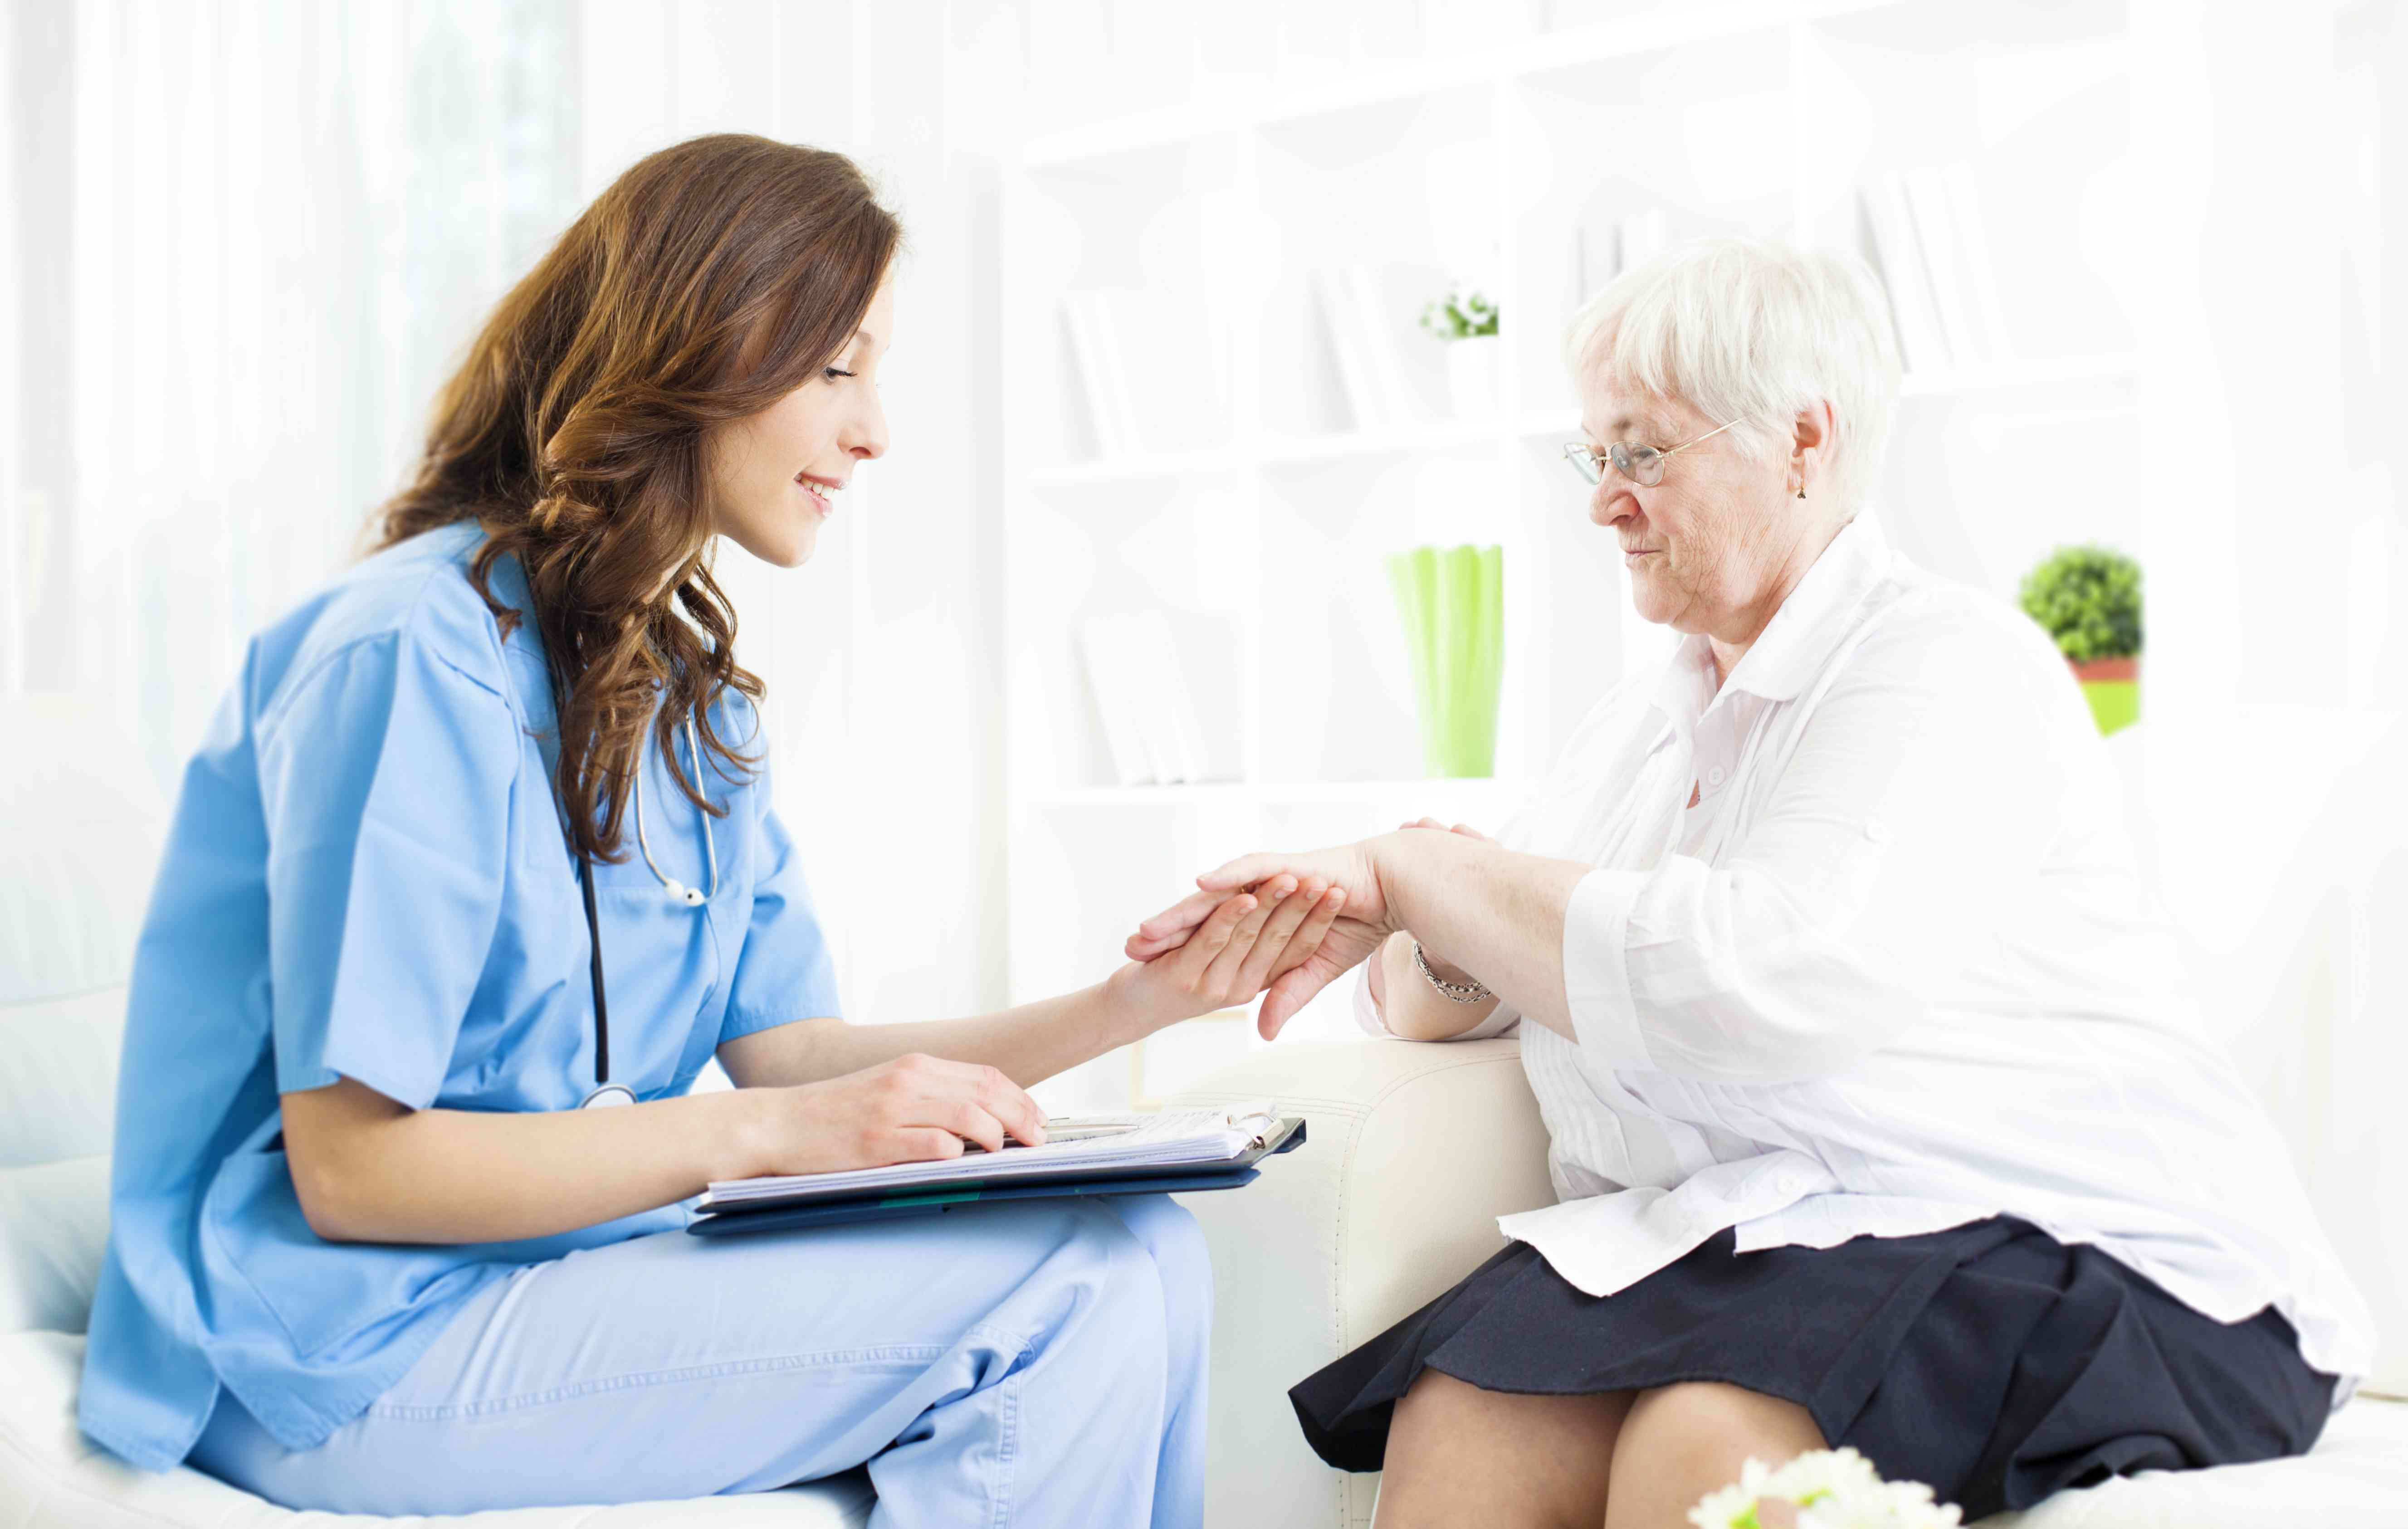 Doctor checking psoriasis on older female patient's hand